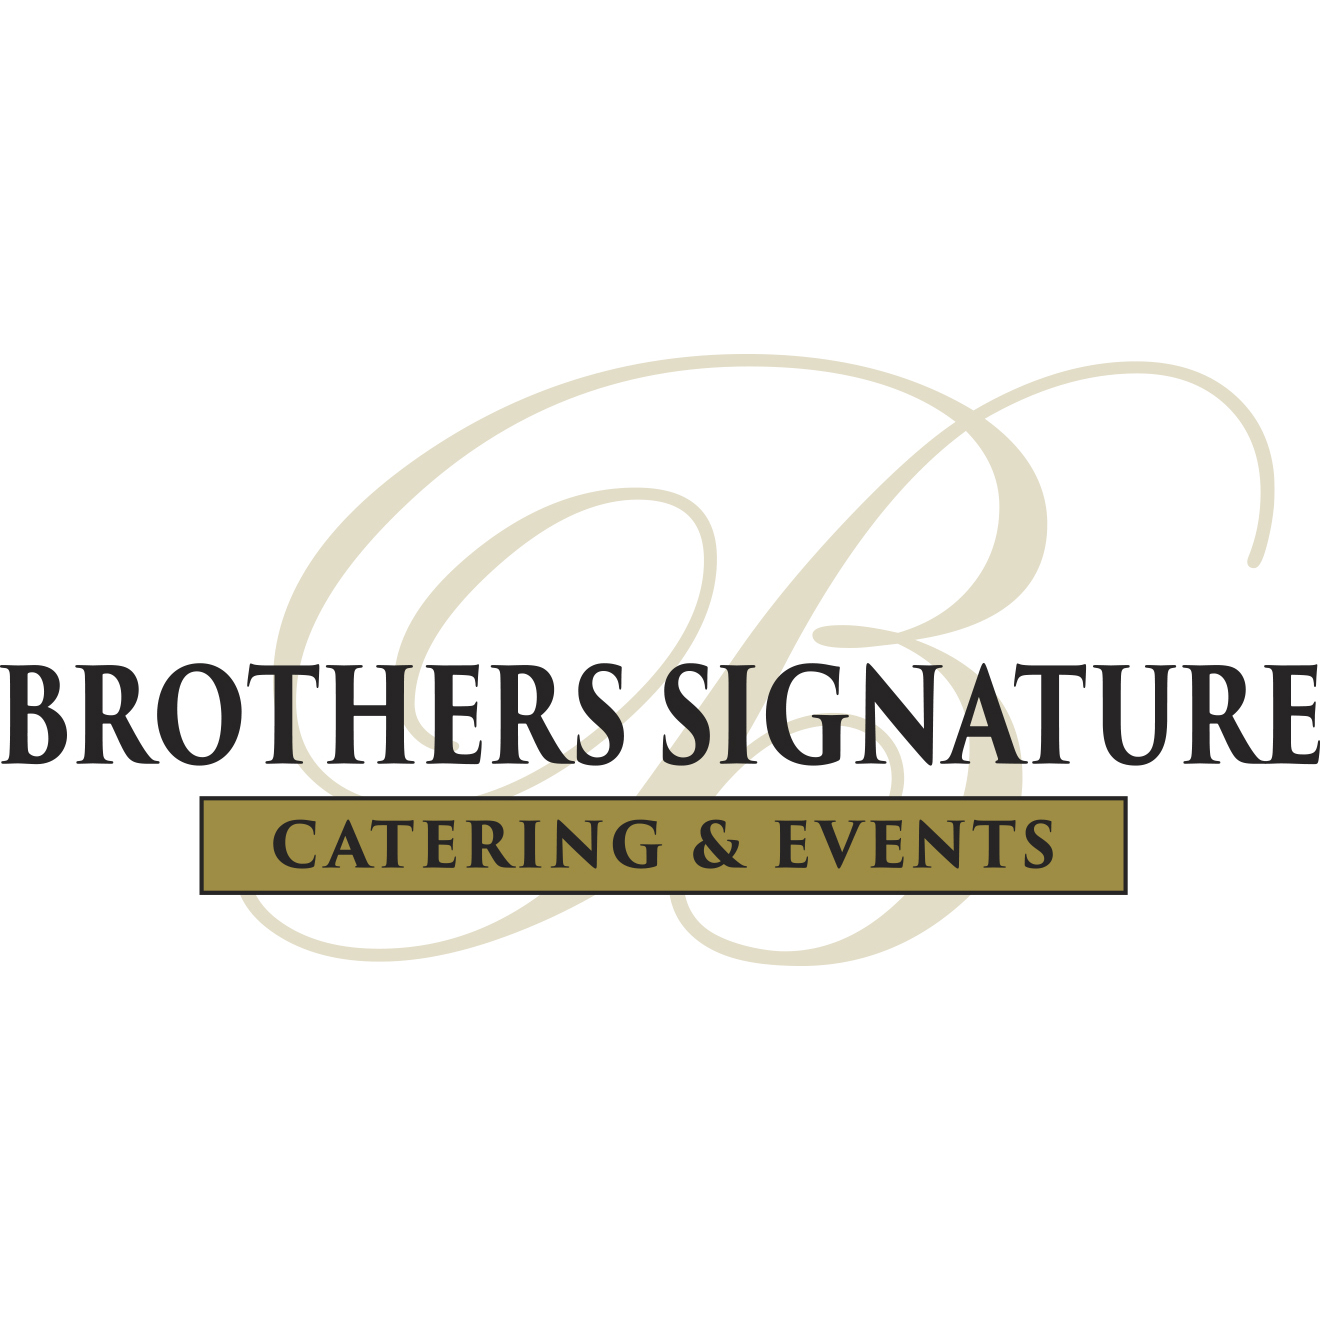 Brothers Signature Catering & Events - Brothers Signature Catering & Events